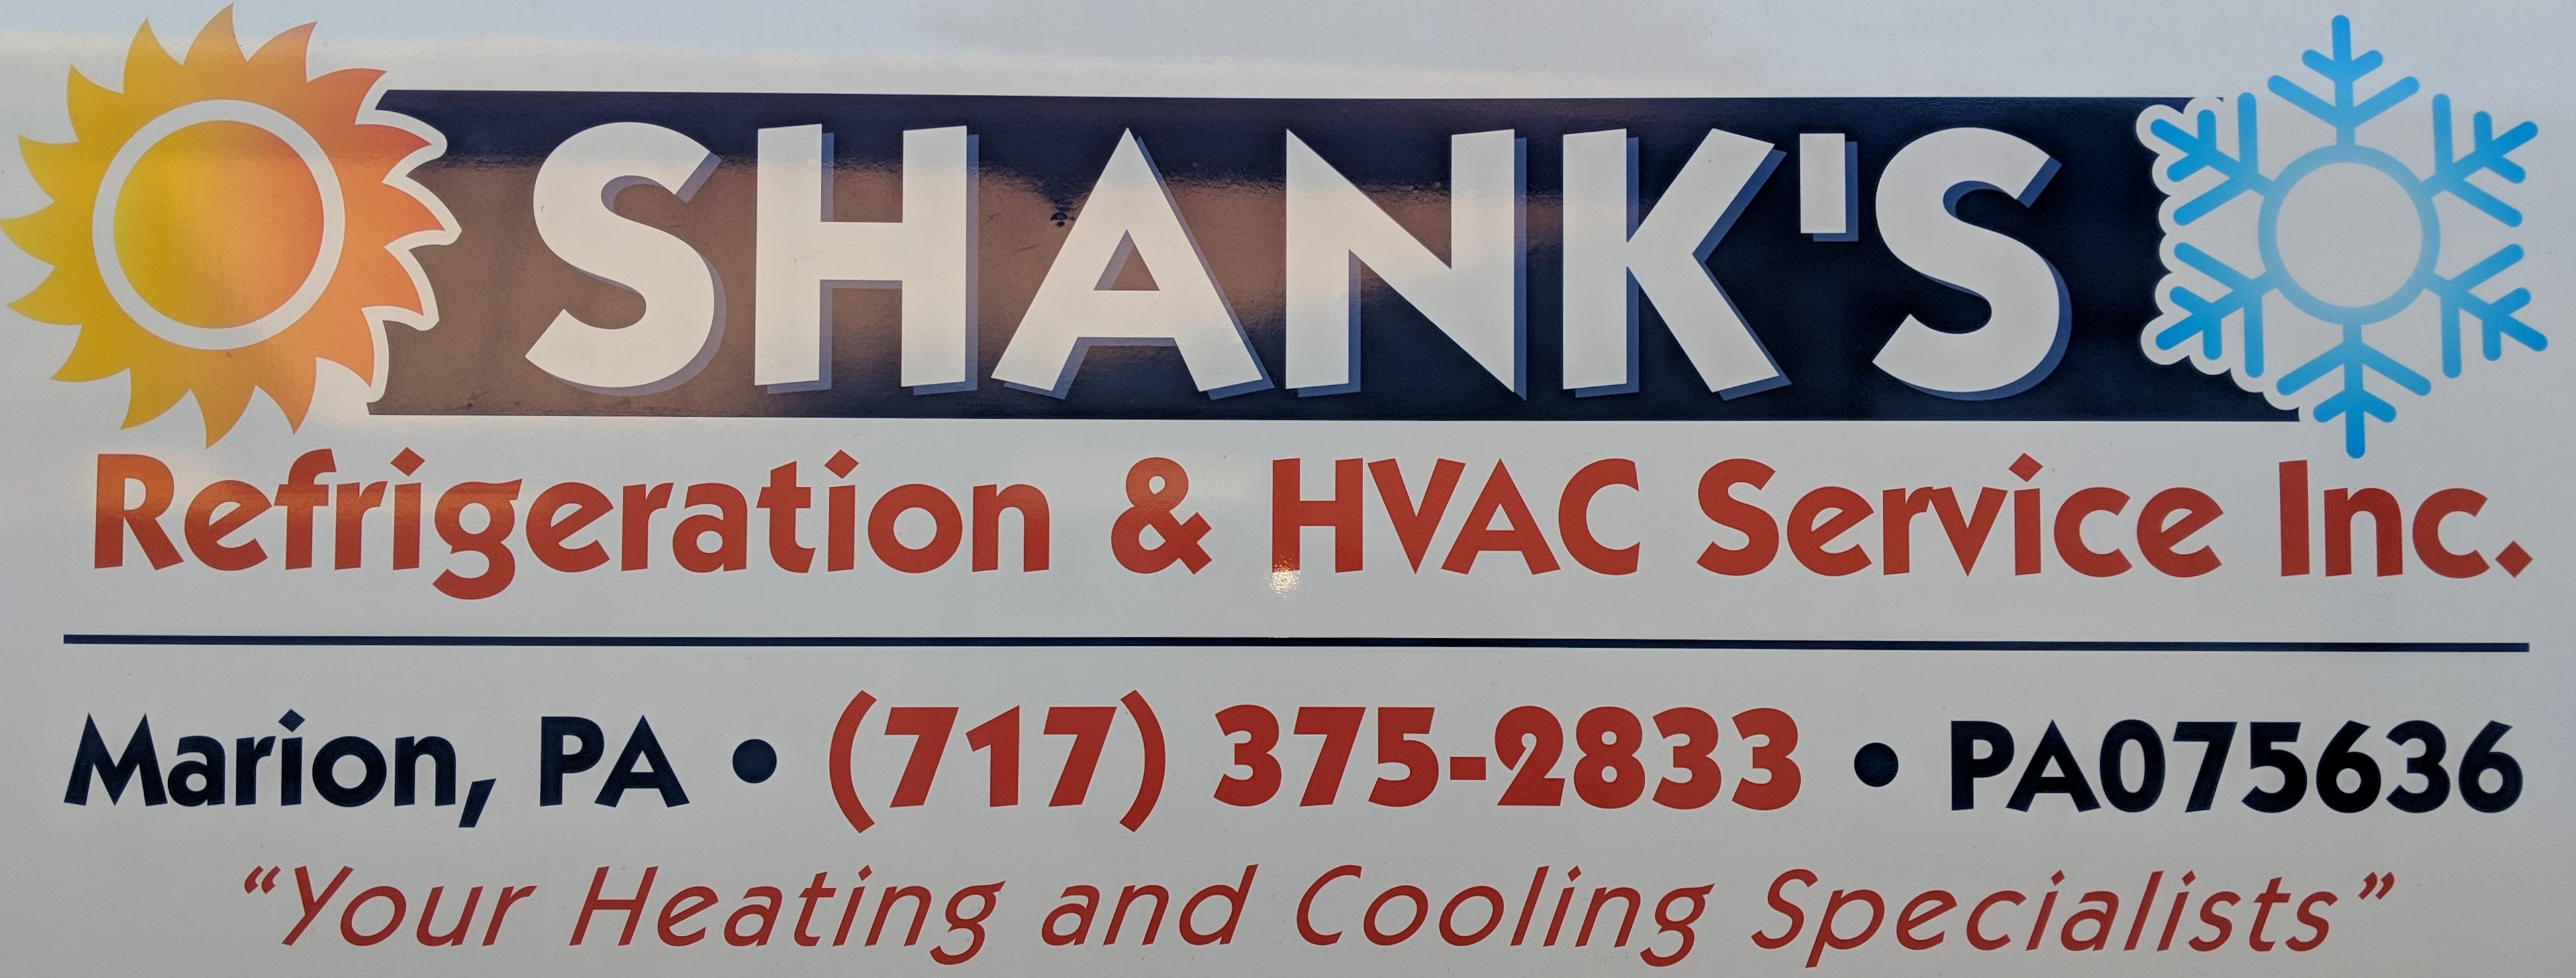 Shanks Refrigeration & HVAC Service